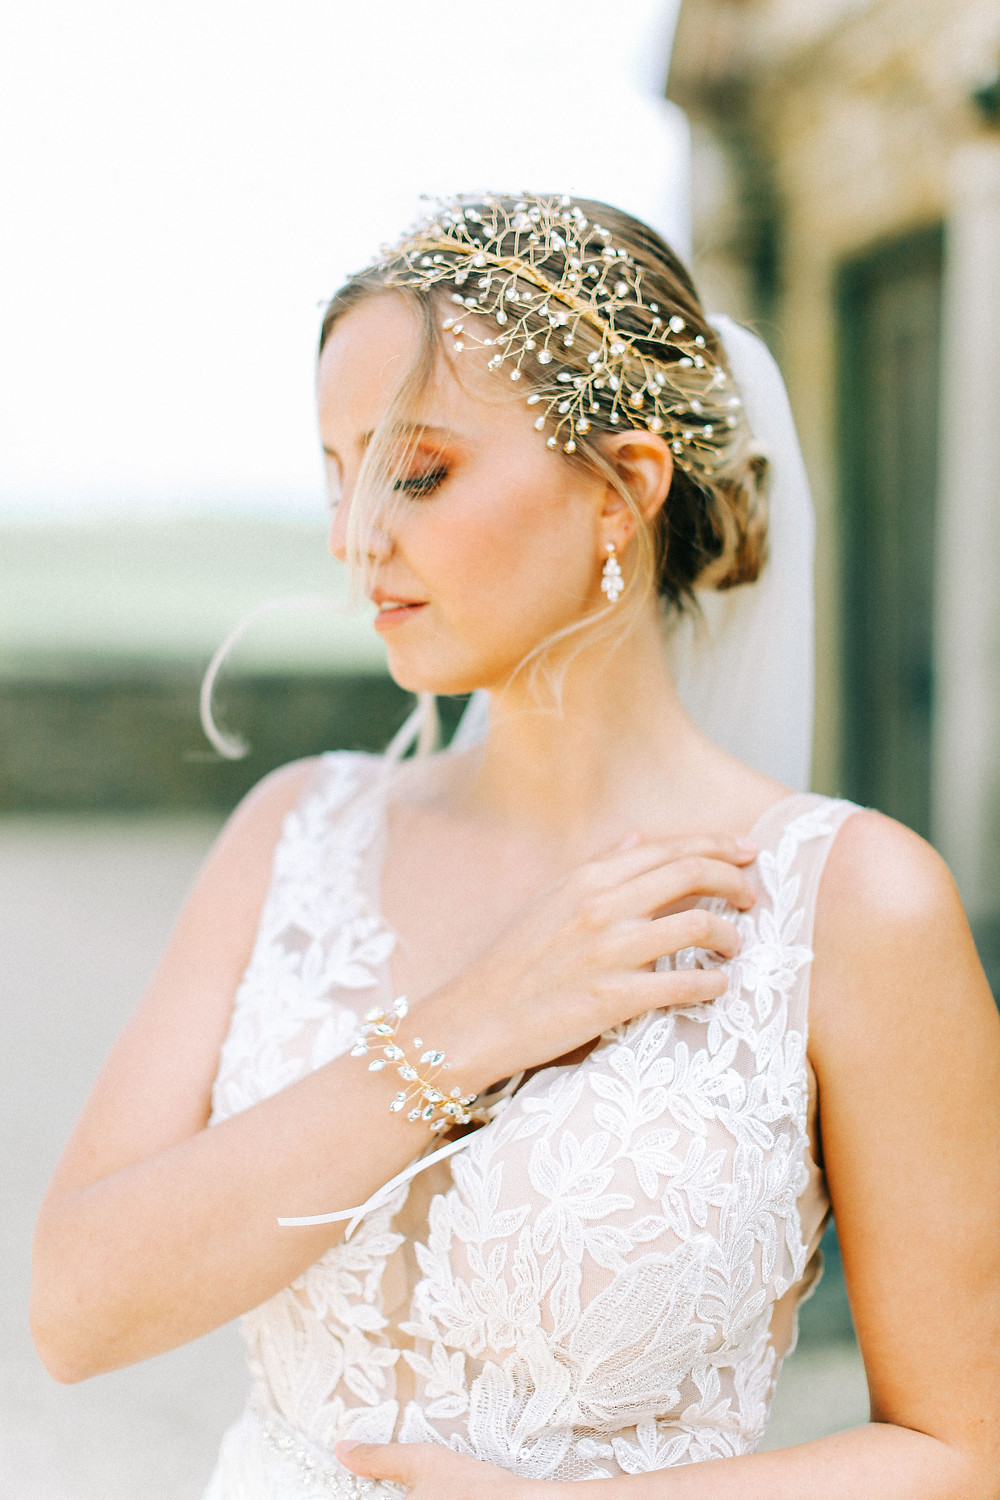 bridal hair vine from Abigail Grace bridal accessories and bracelet at hamswell house bath